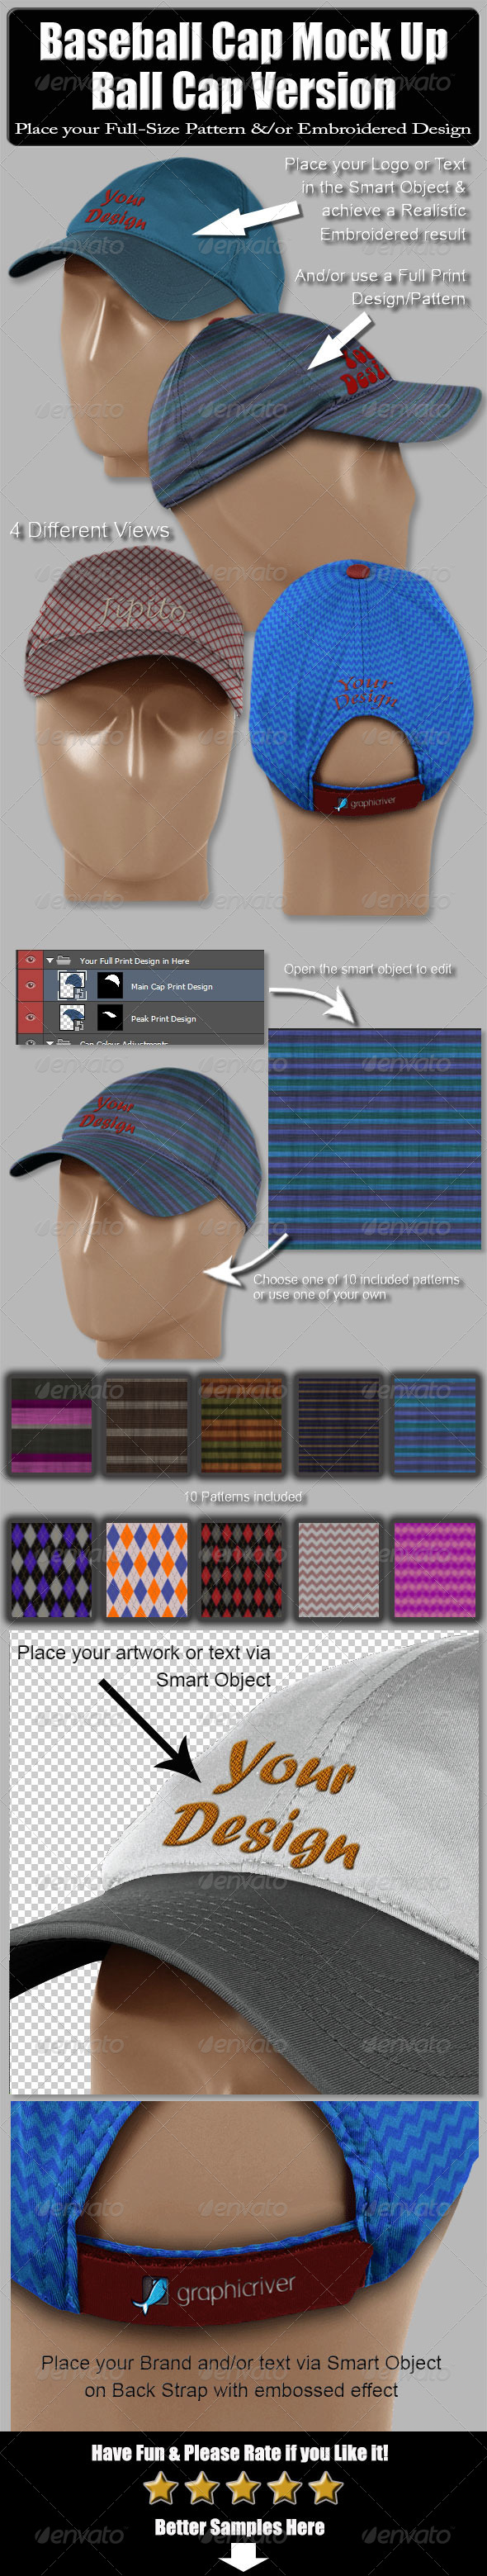 Baseball Cap Mock Up-Ball Cap Version